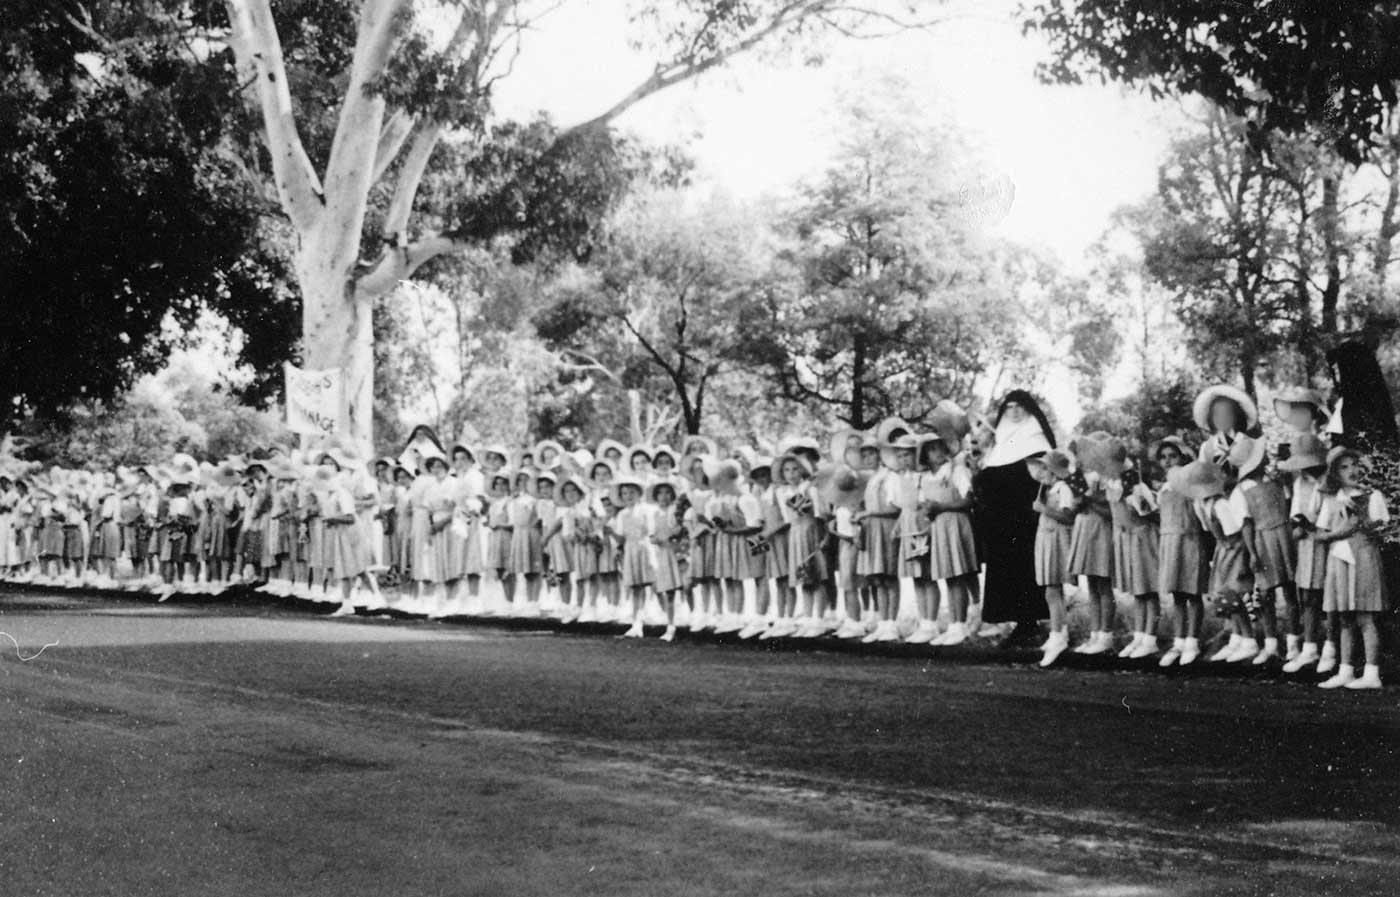 Black and white image showing a long line of girls in uniform, standing at the side of a street. There are three nuns with with girls. Various trees form a backdrop. - click to view larger image